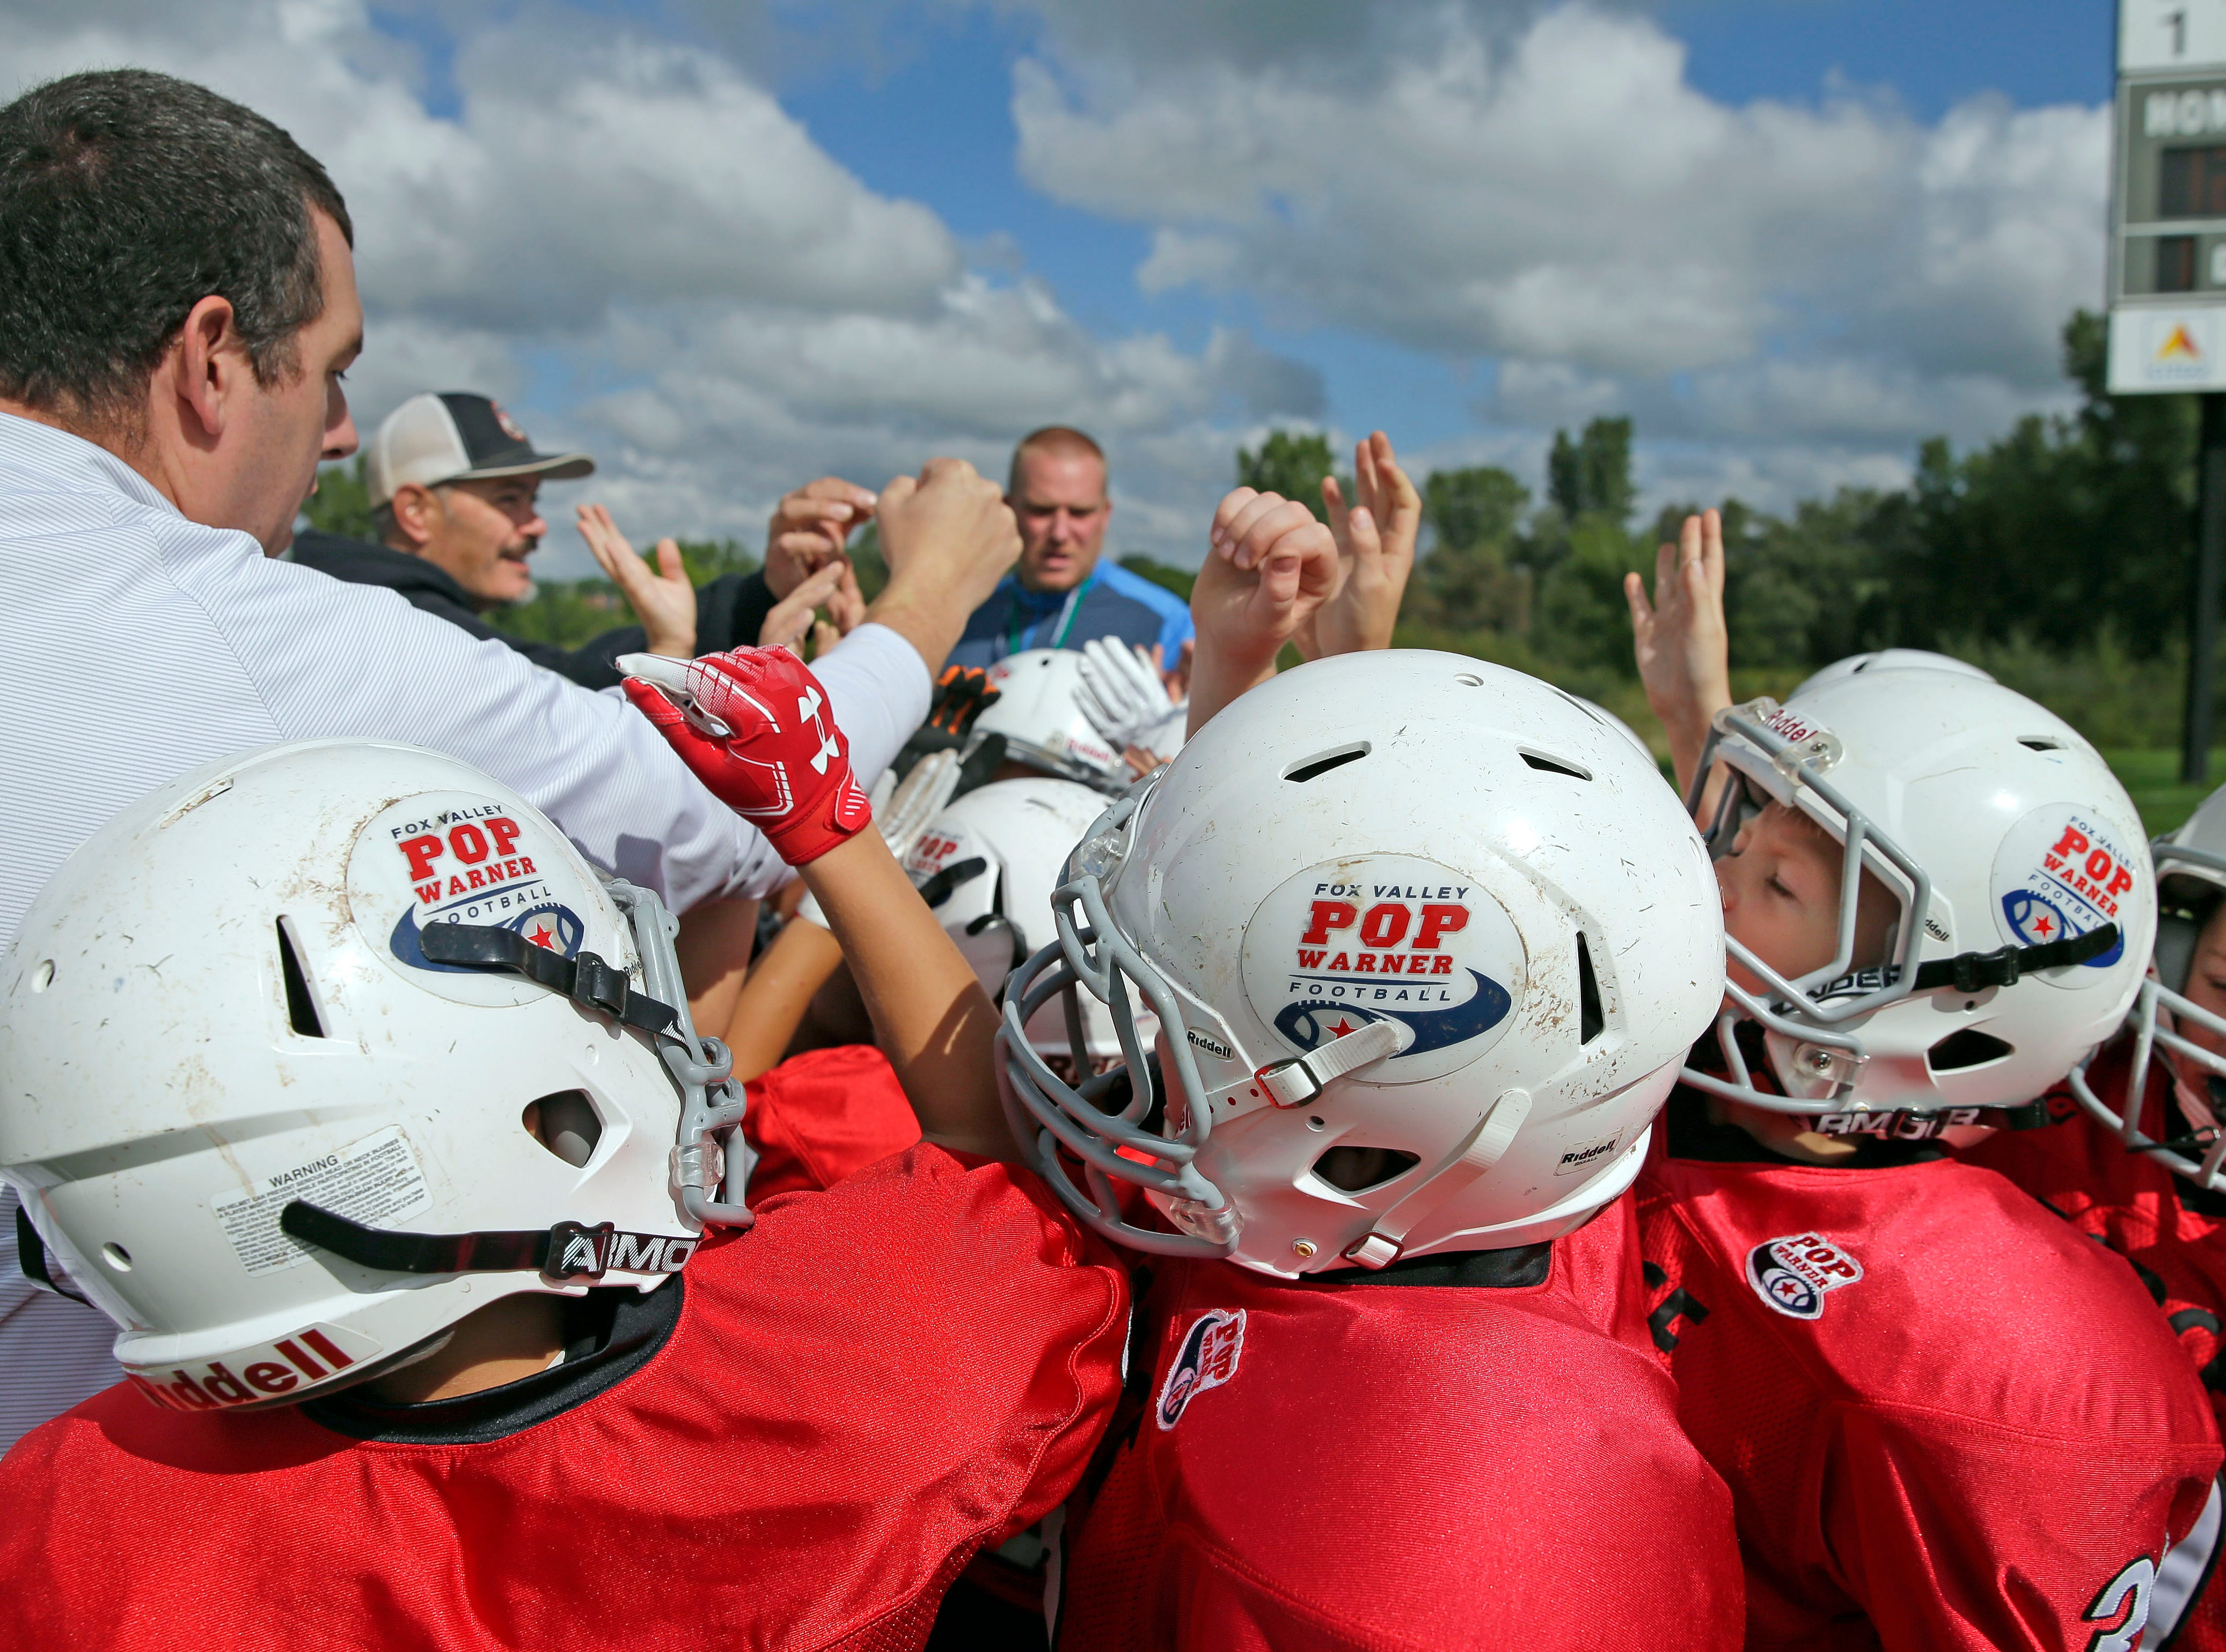 The Force gets ready to take the field as Fox Valley Pop Warner Football opens the season Saturday, September 8, 2018, at Plamann Park in Grand Chute, Wis.